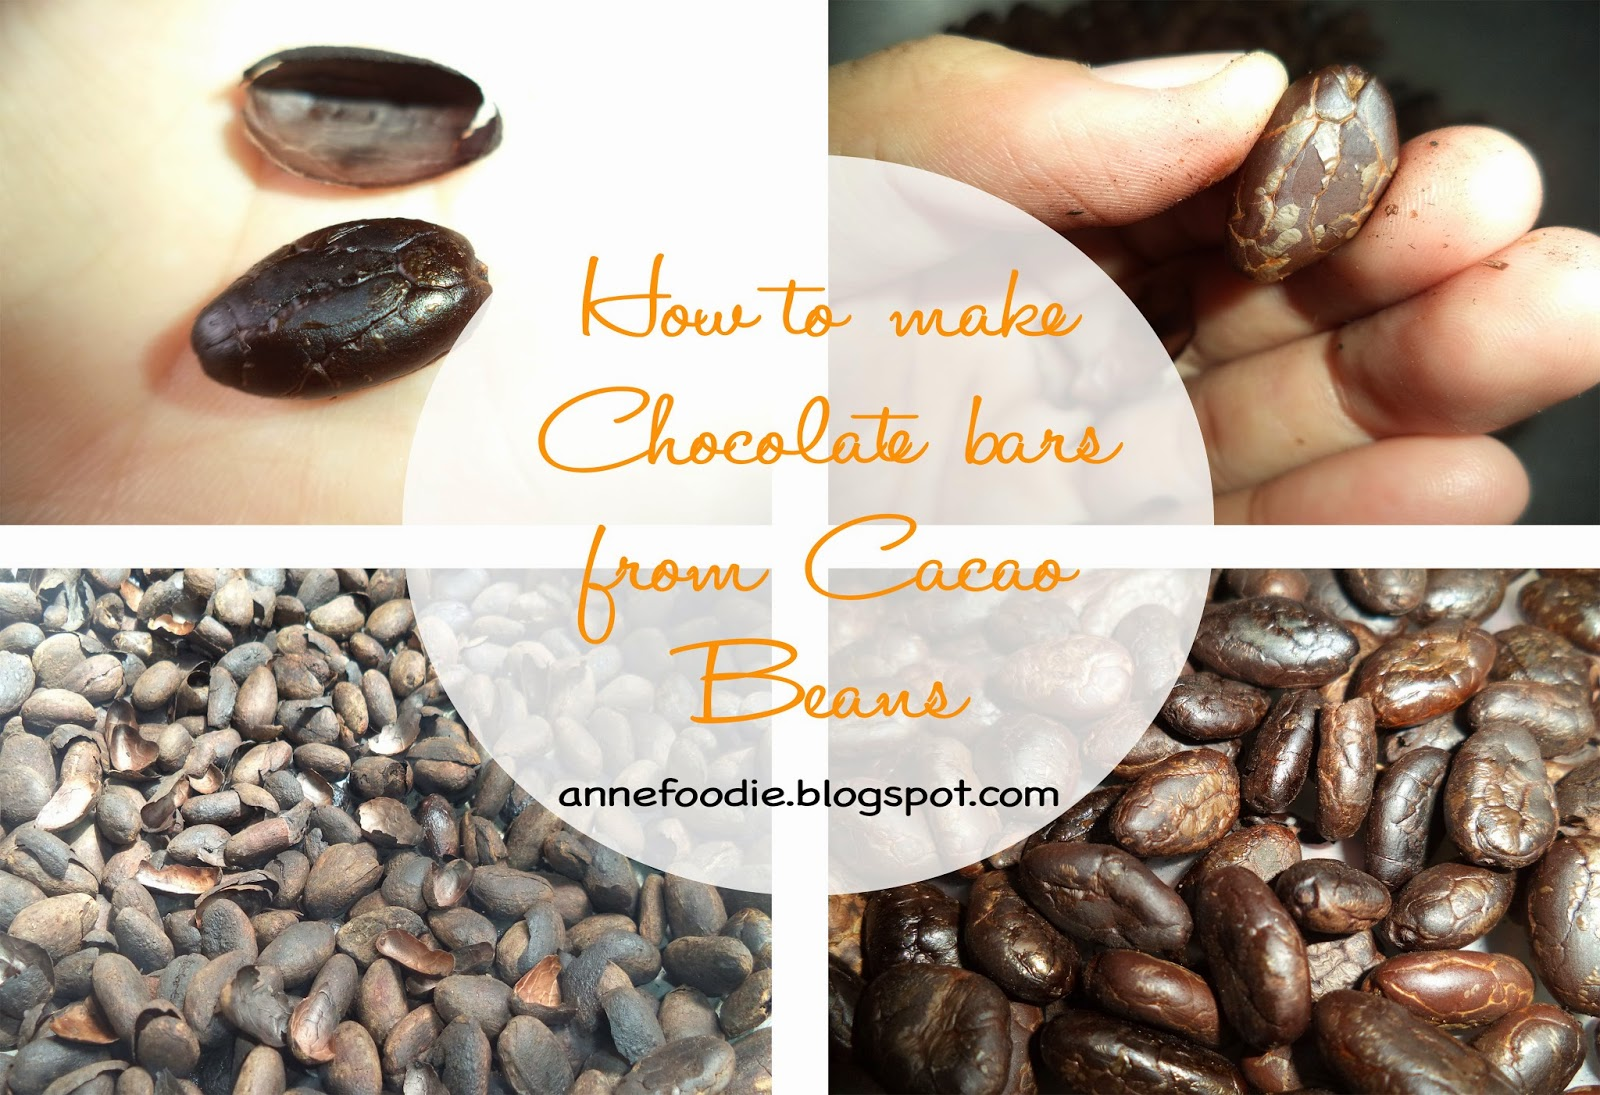 This is how I make my own version of chocolate bar from Cacao beans. In this post I shared how to make homemade chocolate from your own kitchen and using the equipment that already have at home like blender to pulverize my cacao beans. I posted the procedure to be easily follow for beginner like me. This recipe also contains only 3 ingredients to make pure chocolate and this recipe can be customized if you want to add other flavors like salt, cashew nuts or milk.